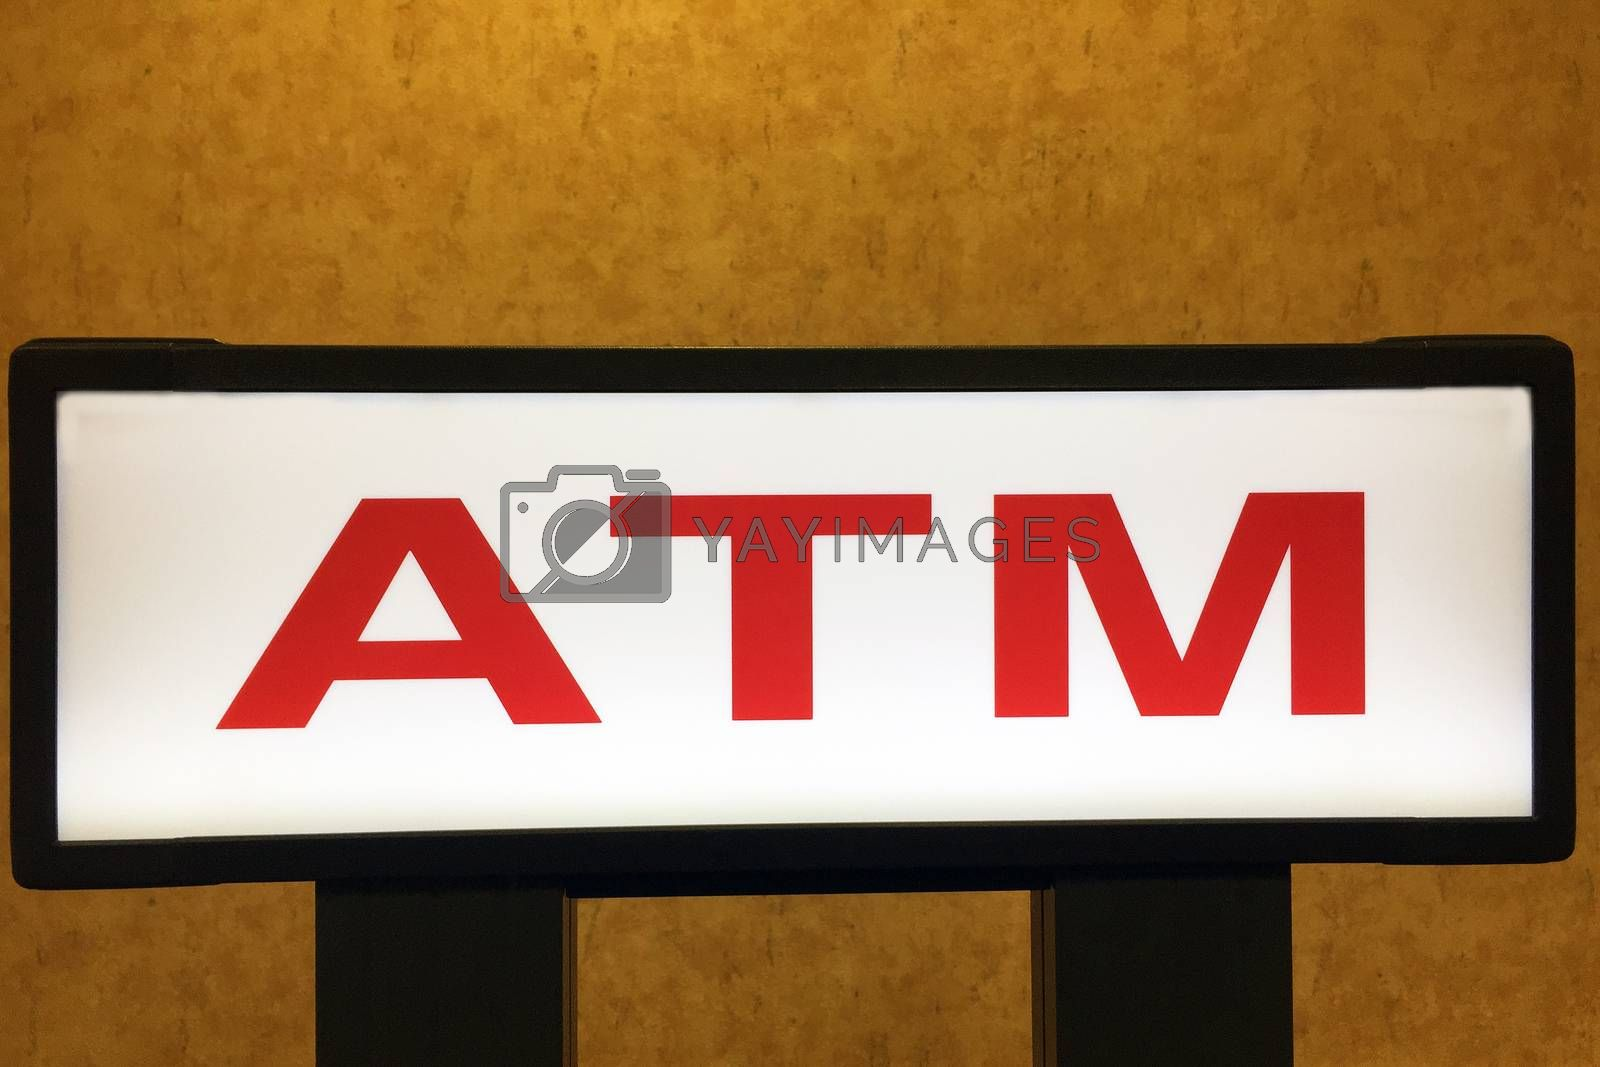 Royalty free image of ATM sign by jimmartin